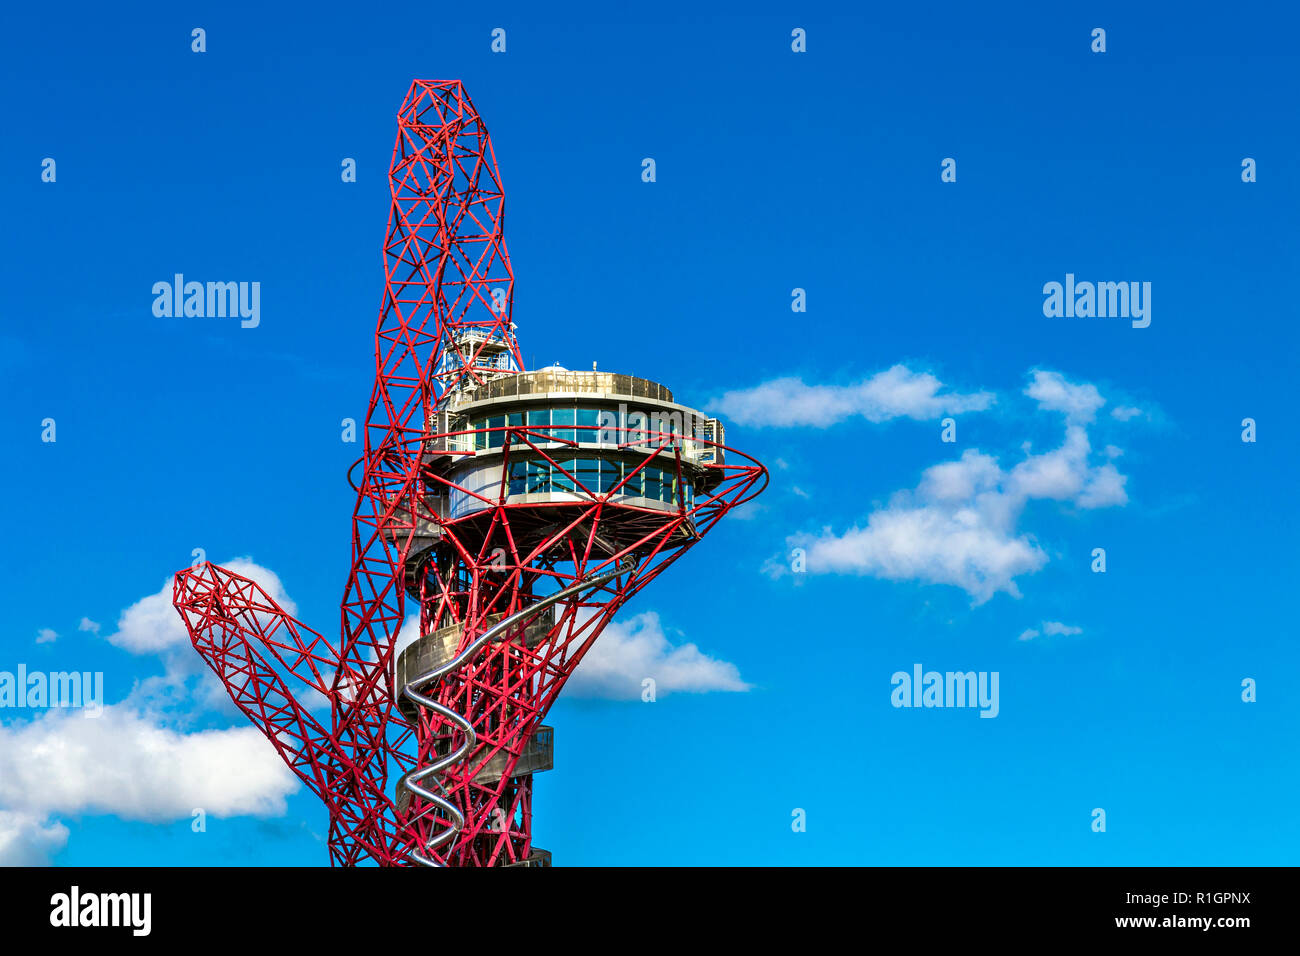 Arcelor Mittal Orbit by Anish Kapoor in the Olympic Village, London, England Stock Photo